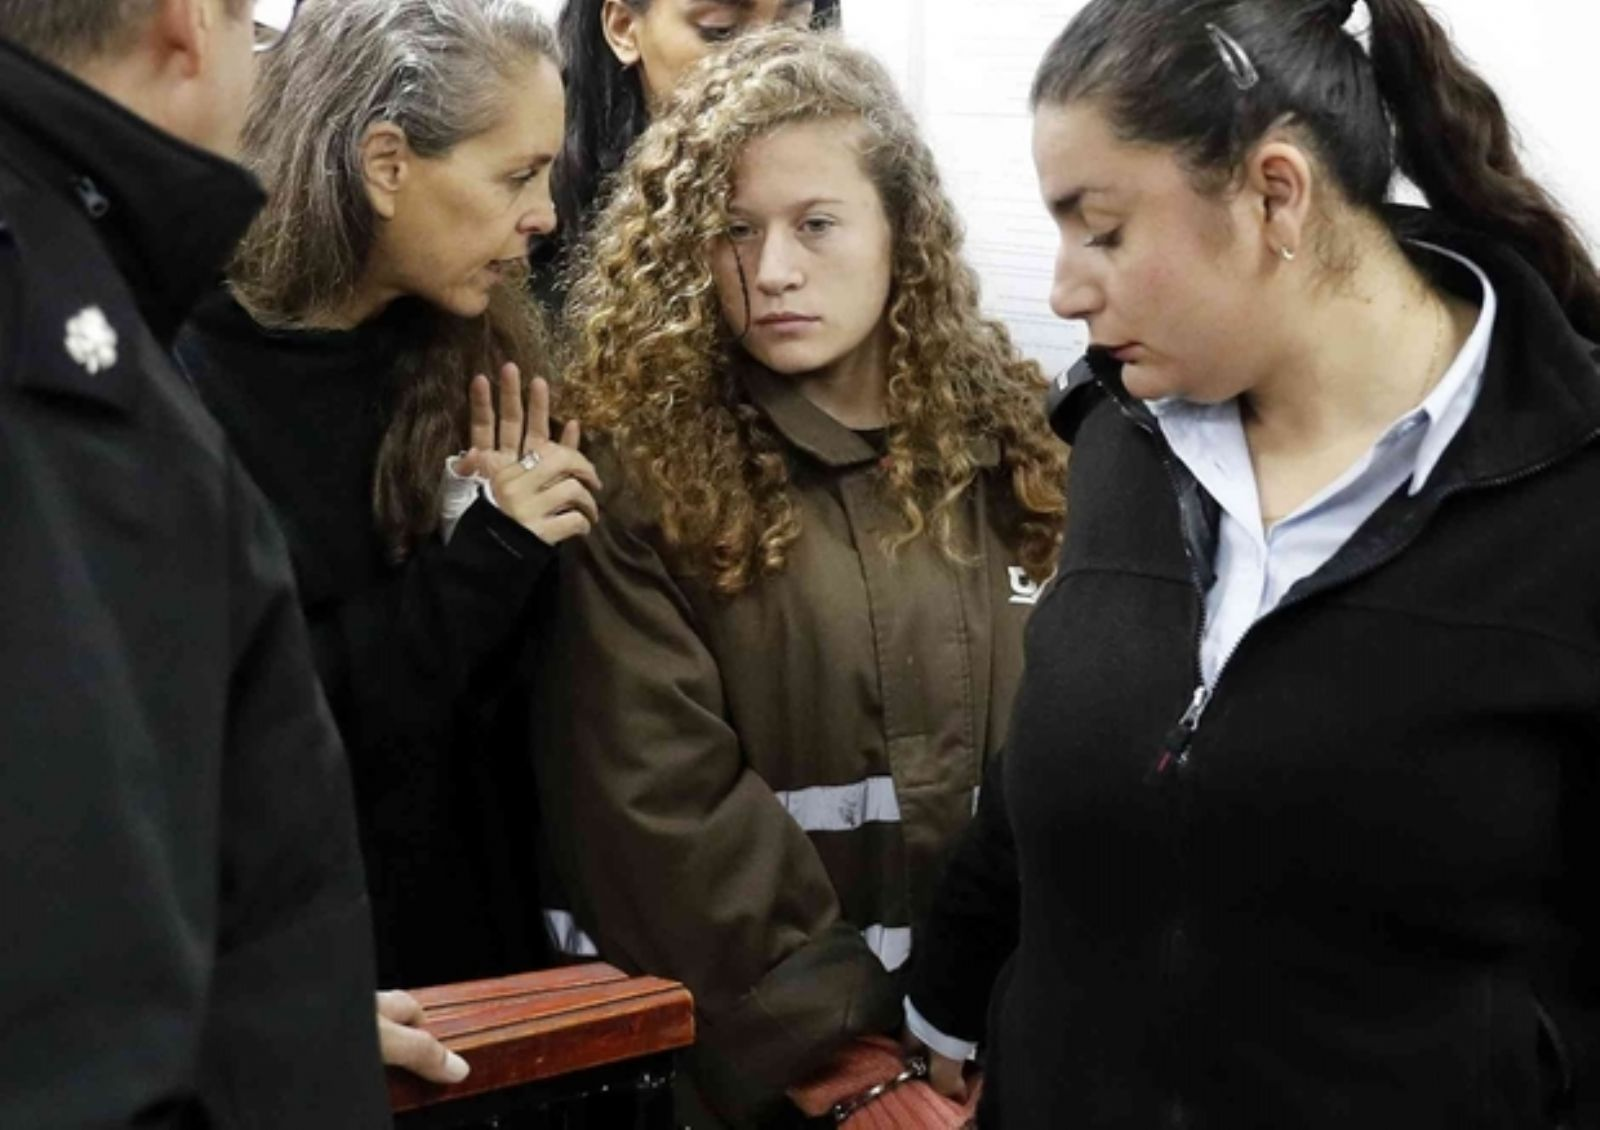 Video shows interrogation of Ahed Tamimi without a lawyer